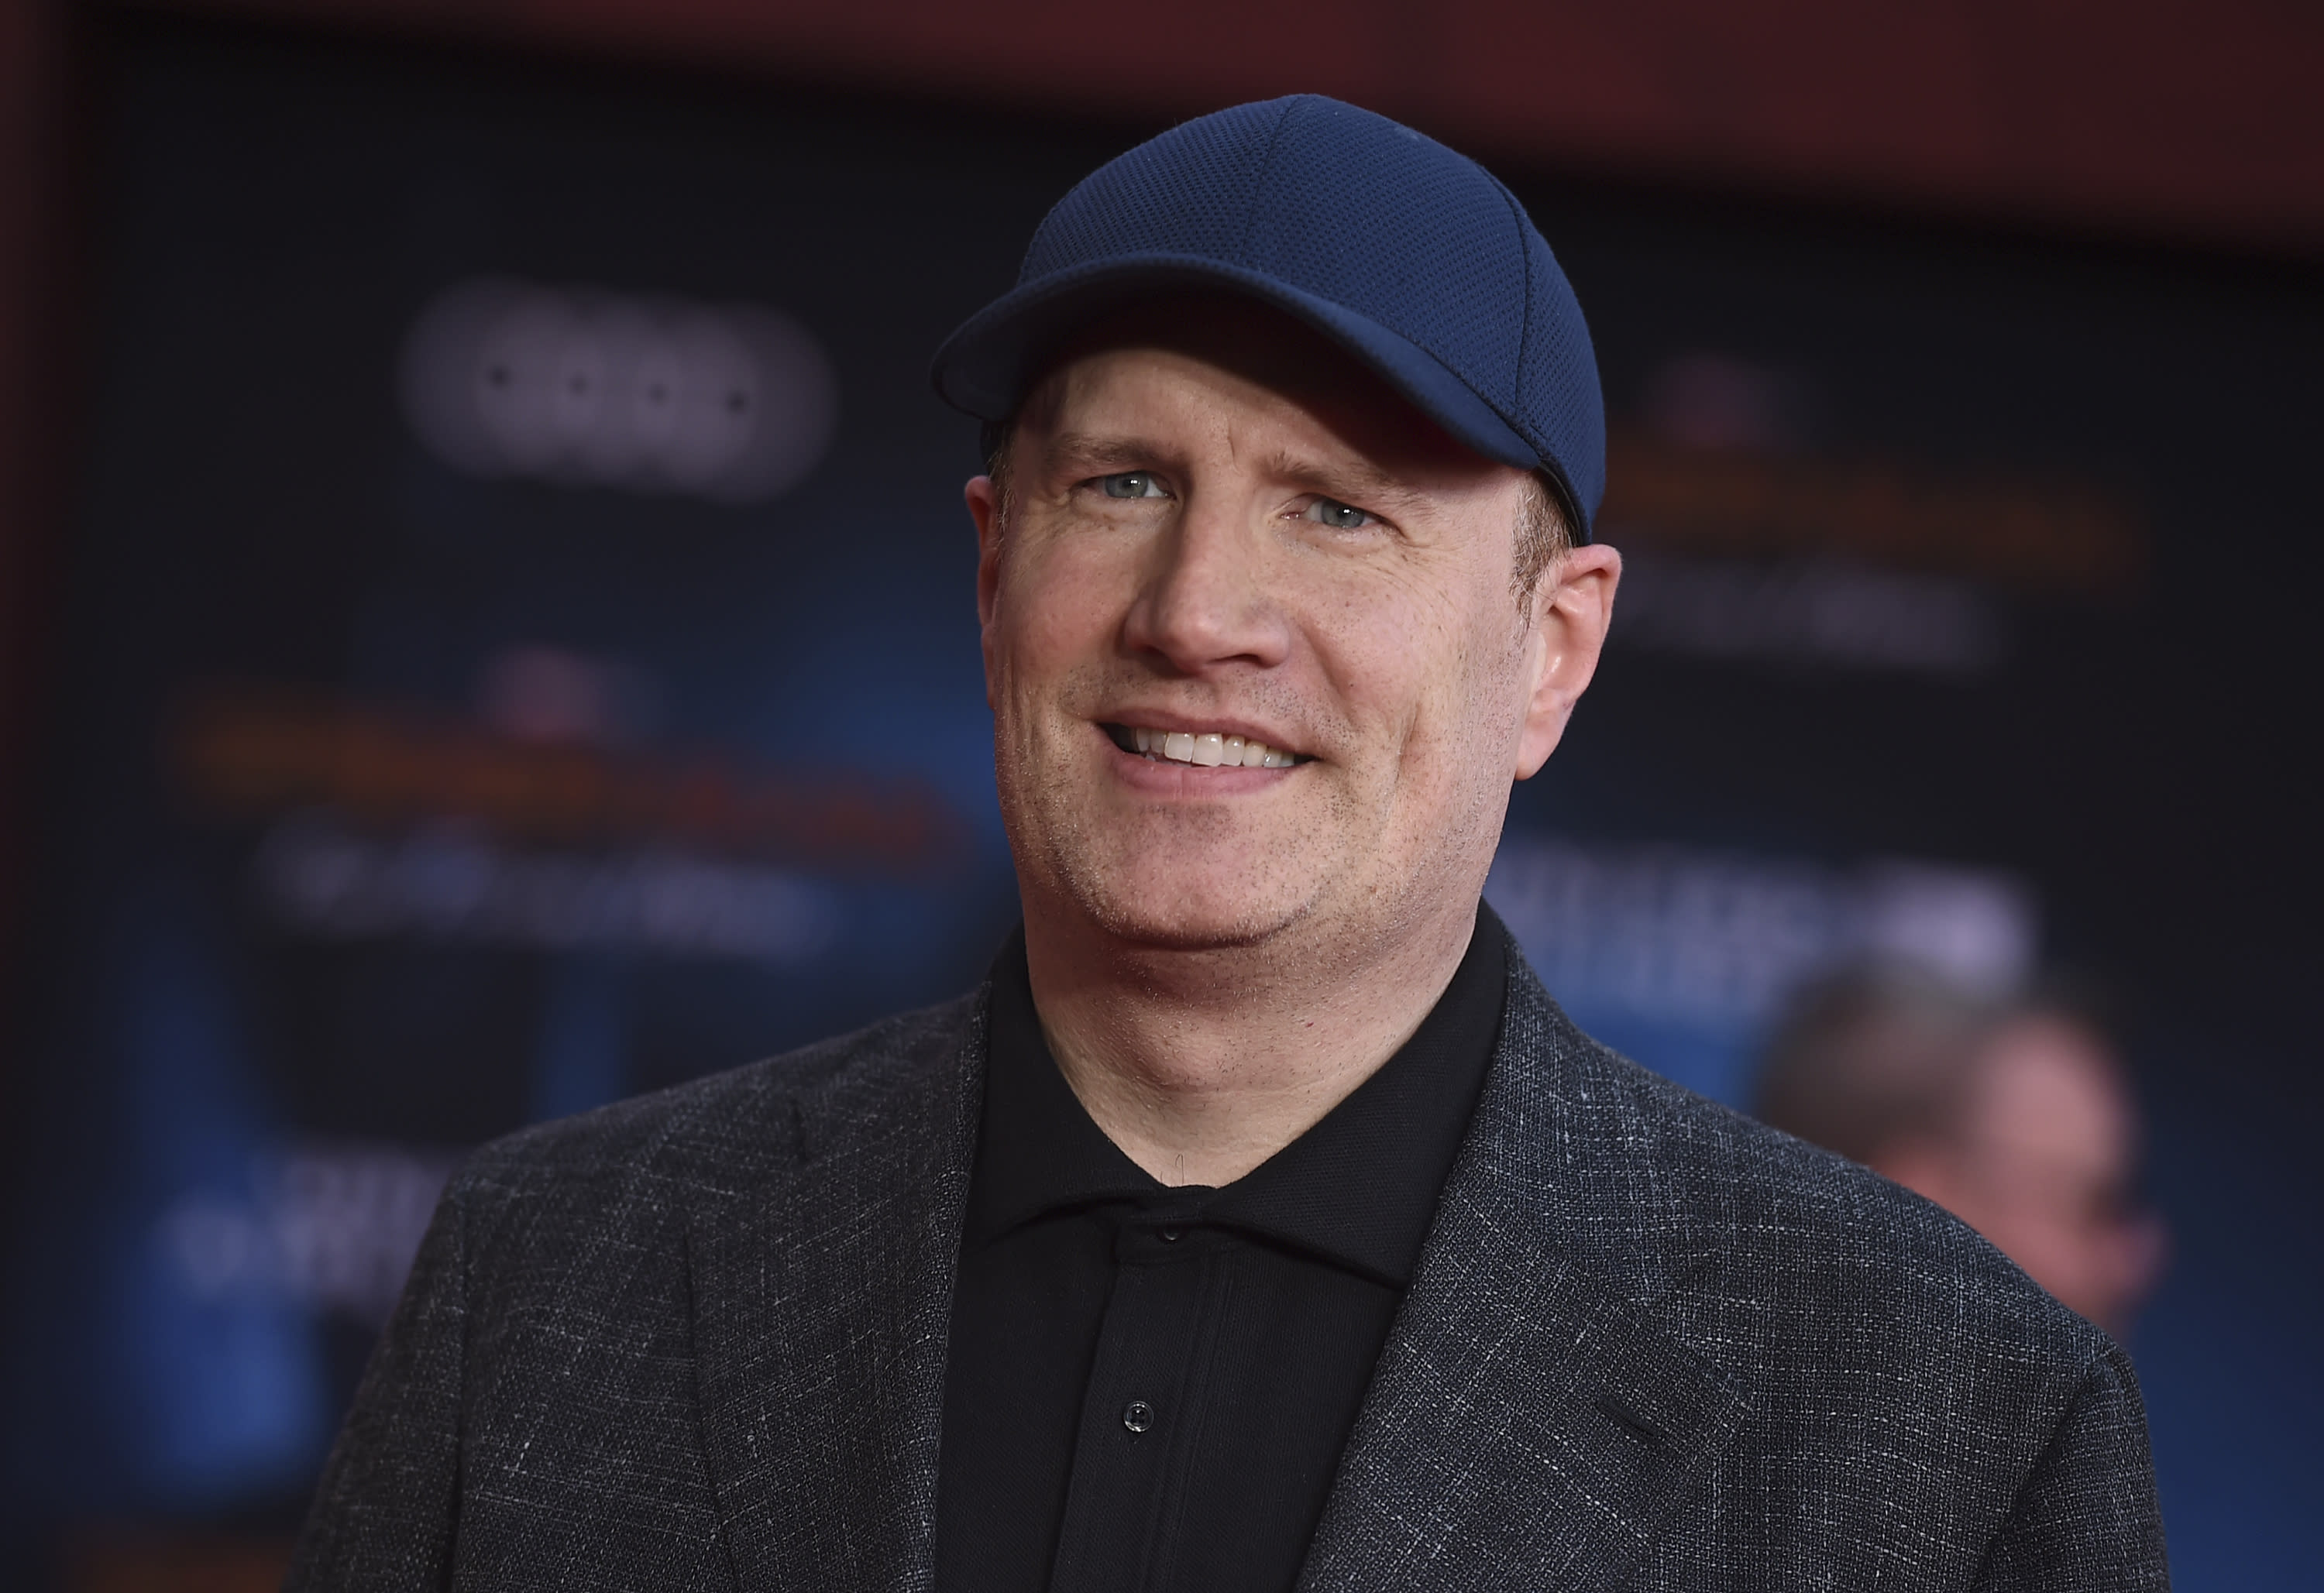 Marvel boss Kevin Feige calls Scorsese's comments 'unfortunate'